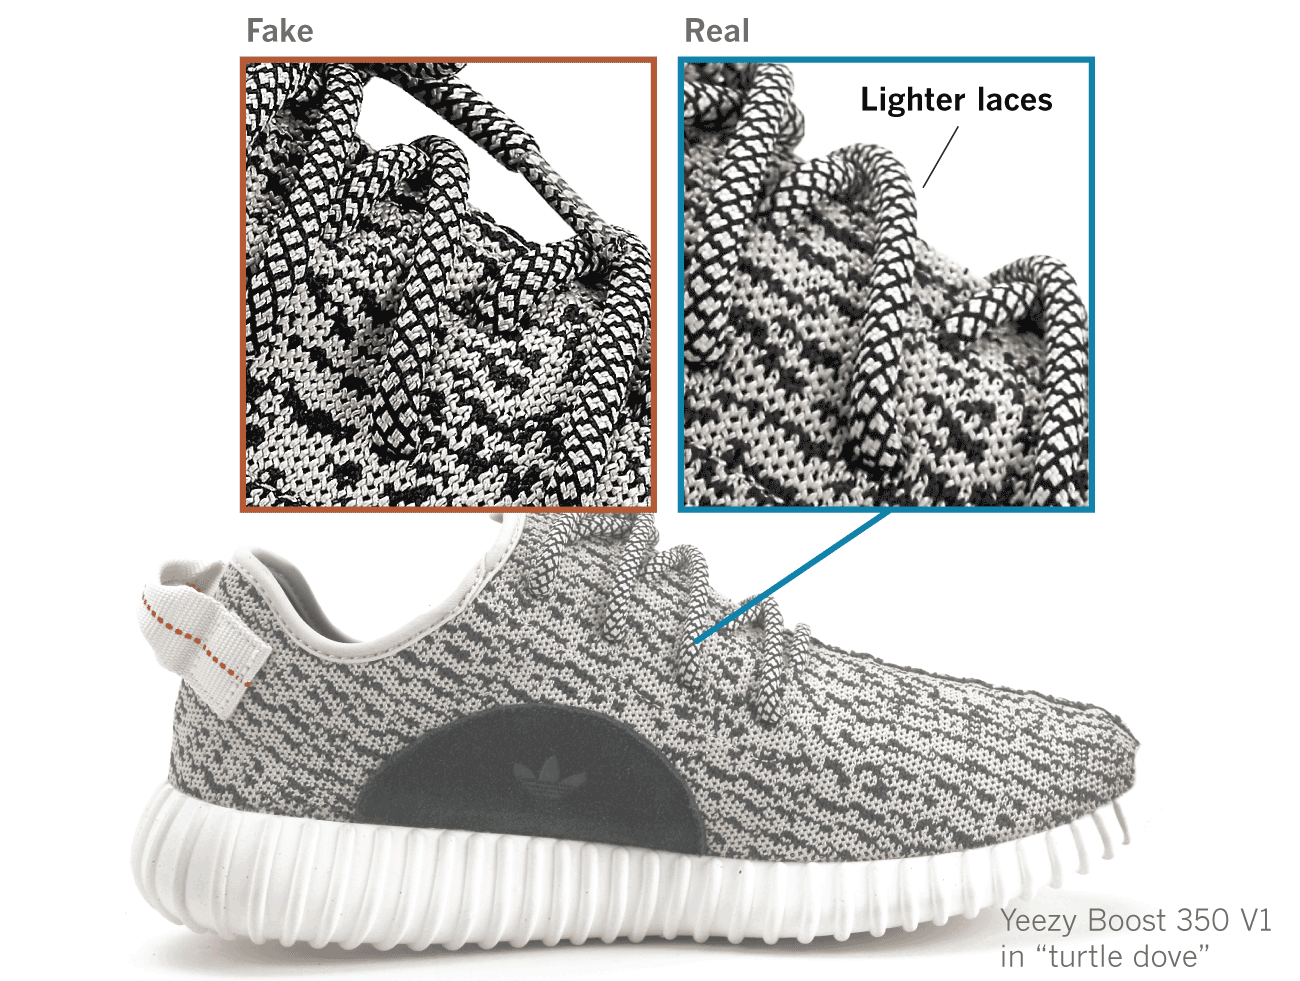 316258c5d Replicating the highly coveted and commercially successful Adidas Yeezy has  become so sophisticated that even some of the most astute fans can t tell  the ...